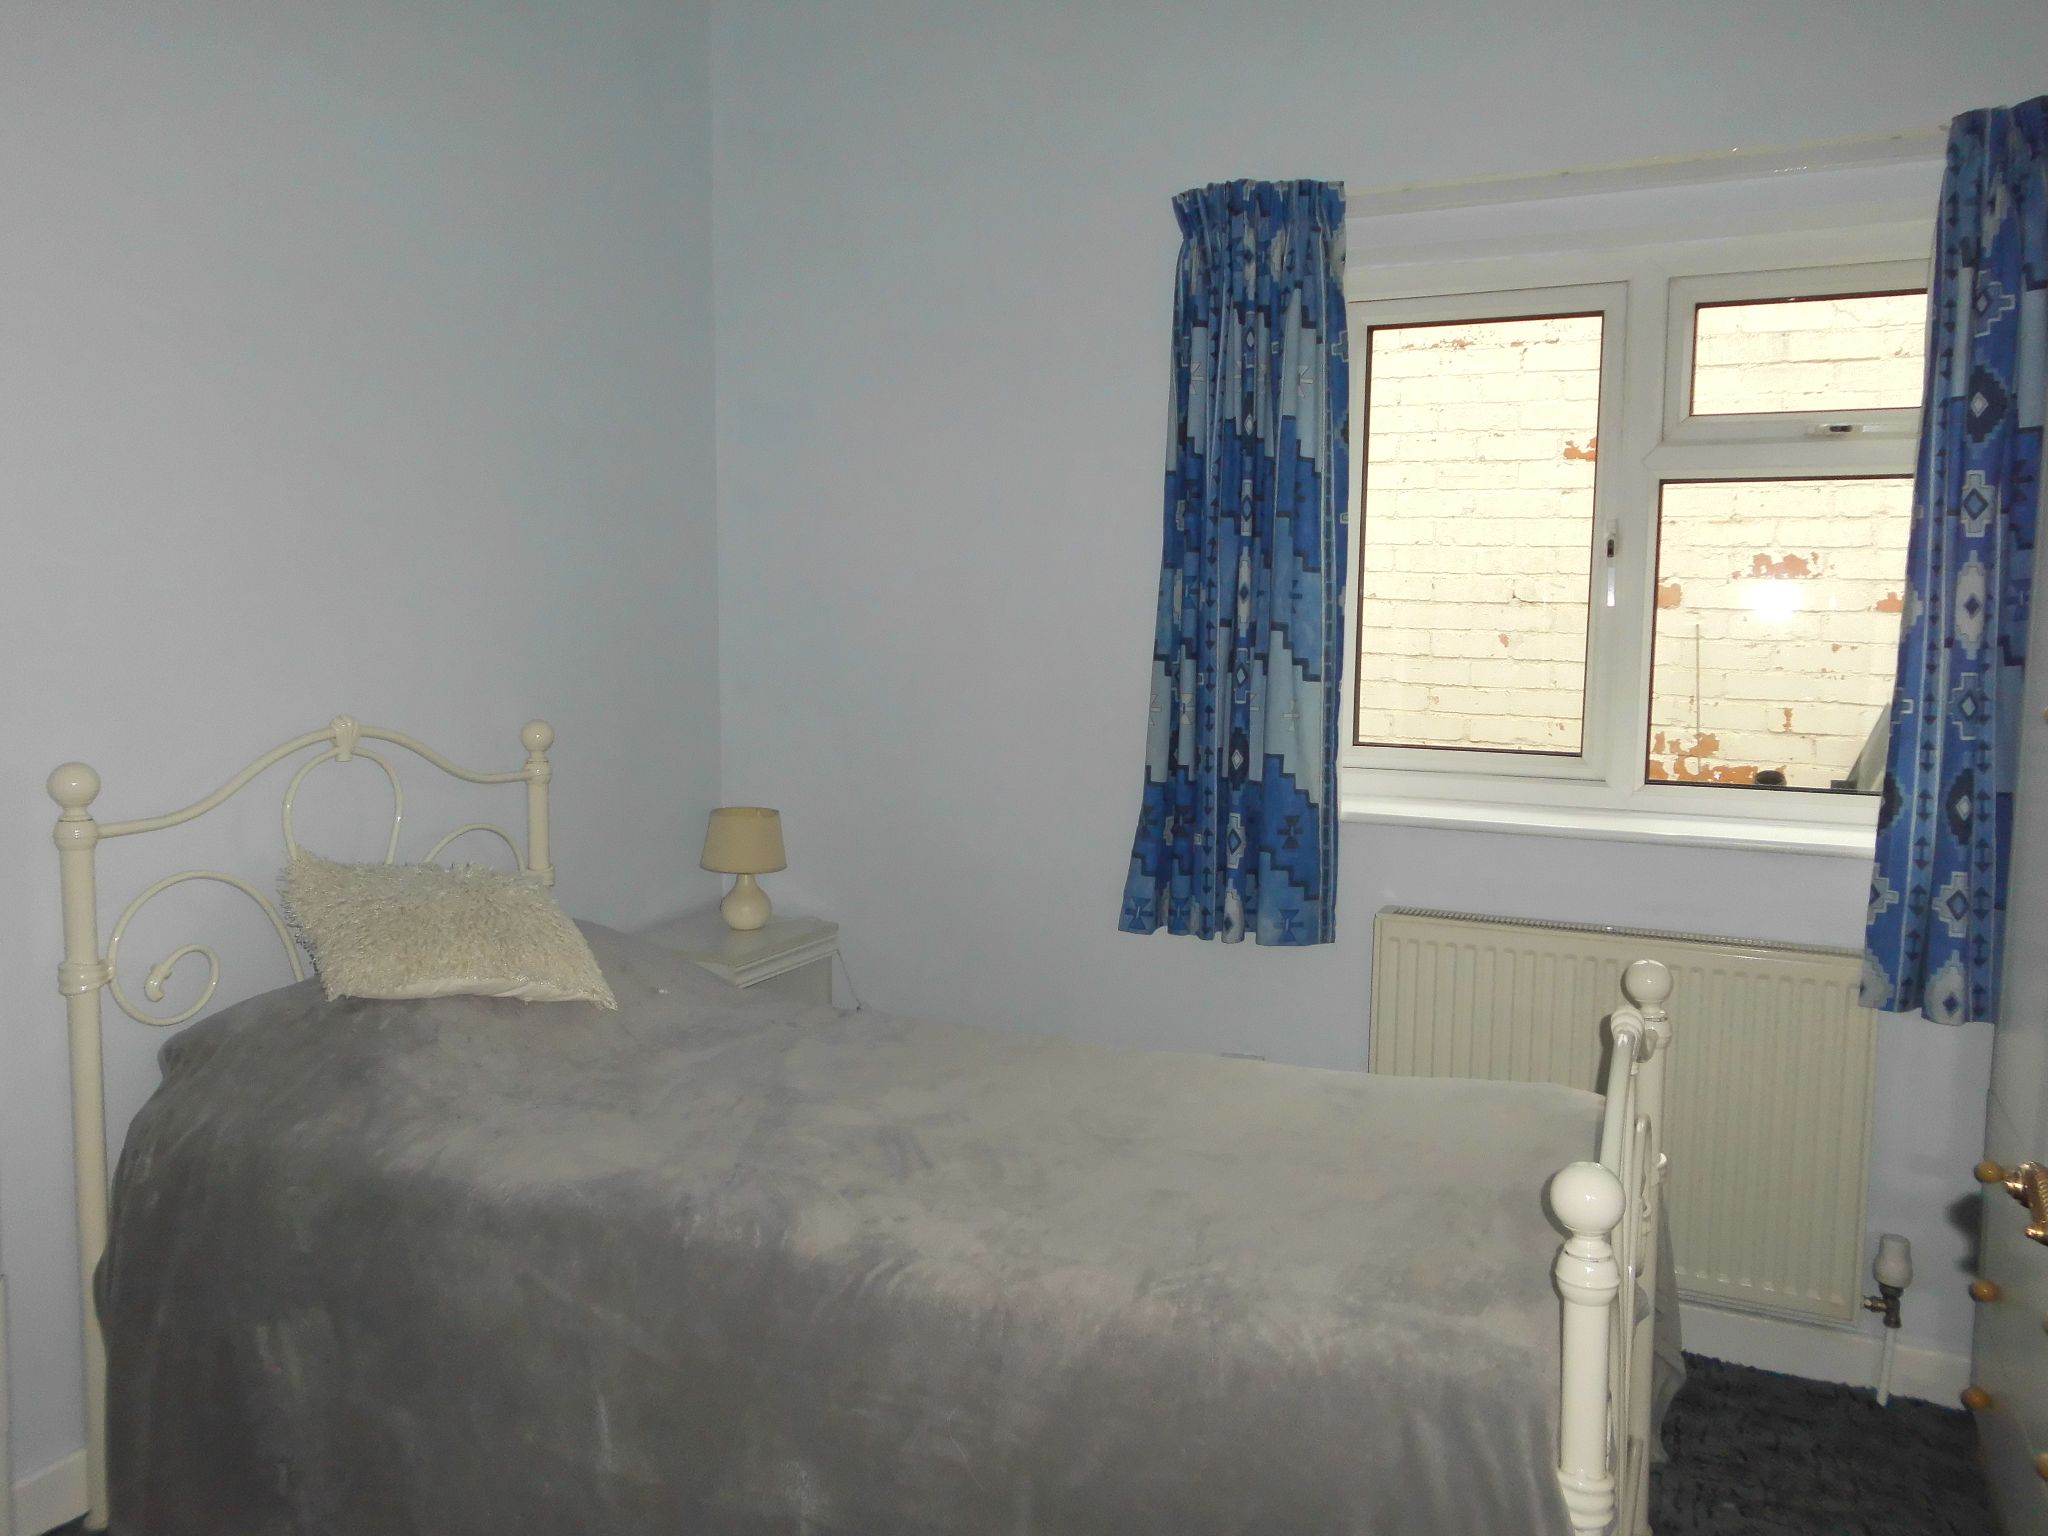 4 bedroom detached bungalow SSTC in Leicester - Photograph 11.